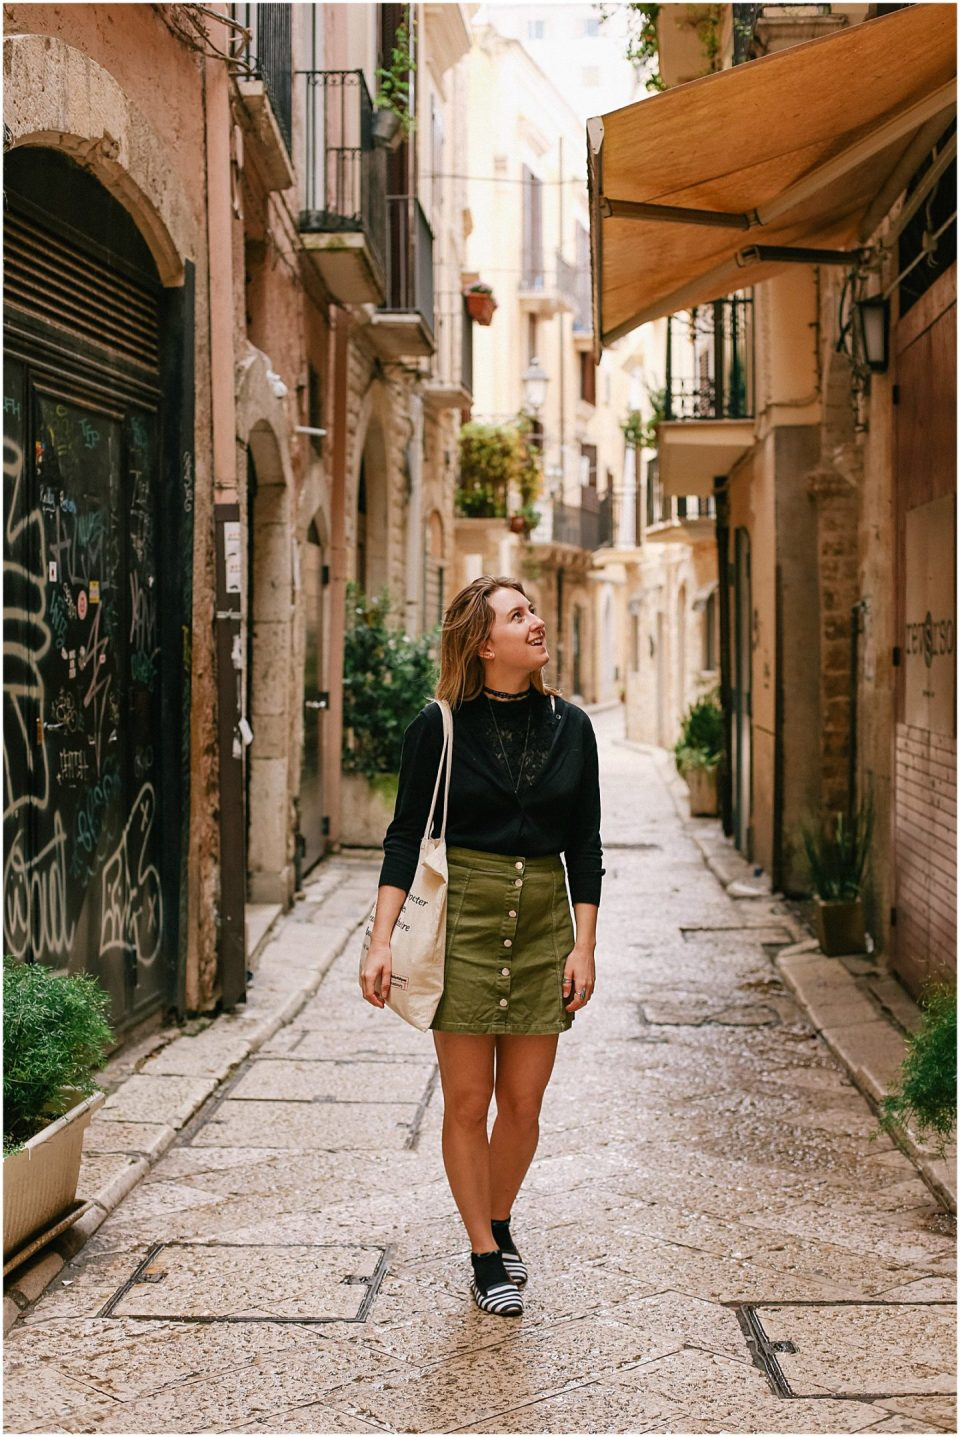 Helena Woods photographer walking in Bari's Old Town in Puglia Italy